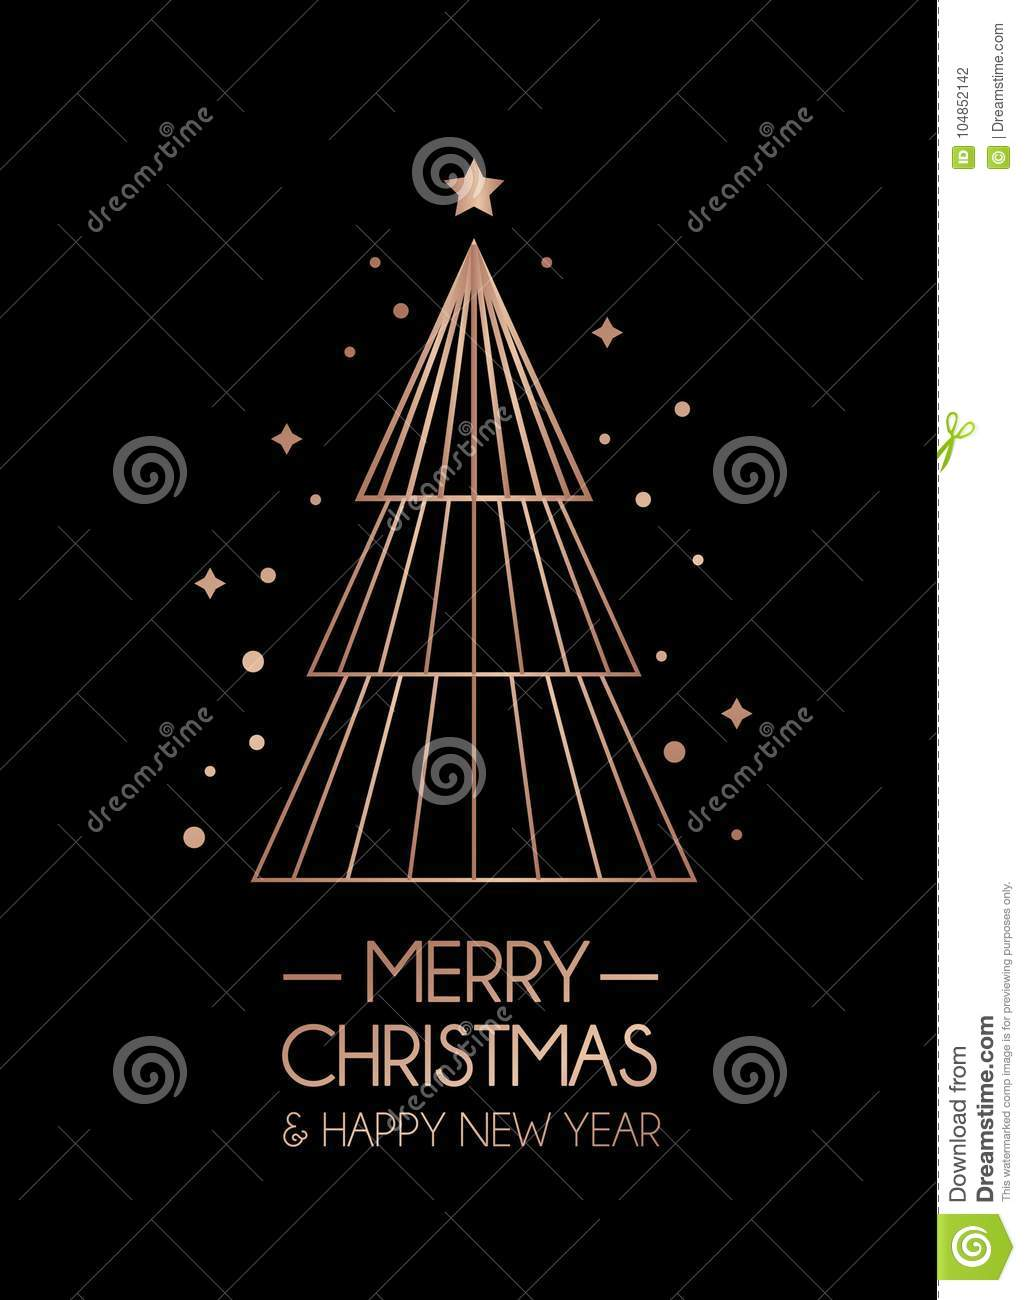 Merry Christmas And Happy New Year Rose Gold Greeting Card Minimalistic Christmas Card On Black Background Stock Vector Illustration Of Element Black 104852142